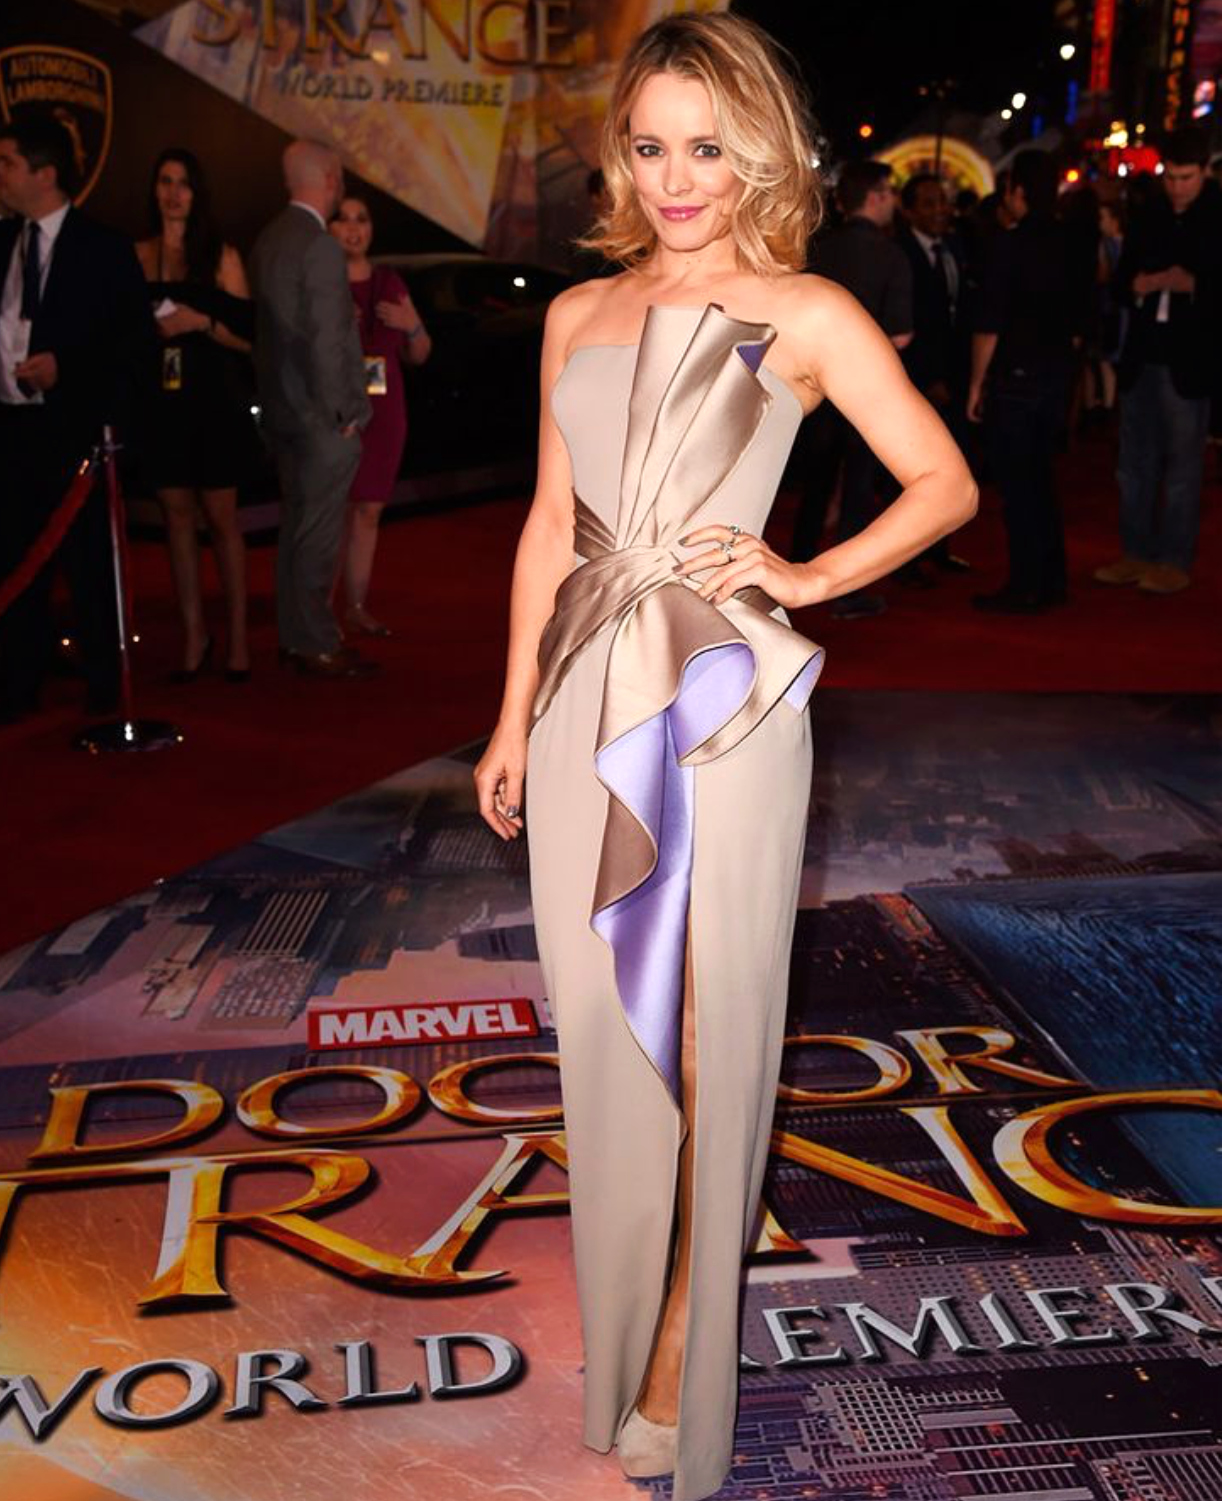 doctor-strange-movie-premiere-rachel-mcadams-la